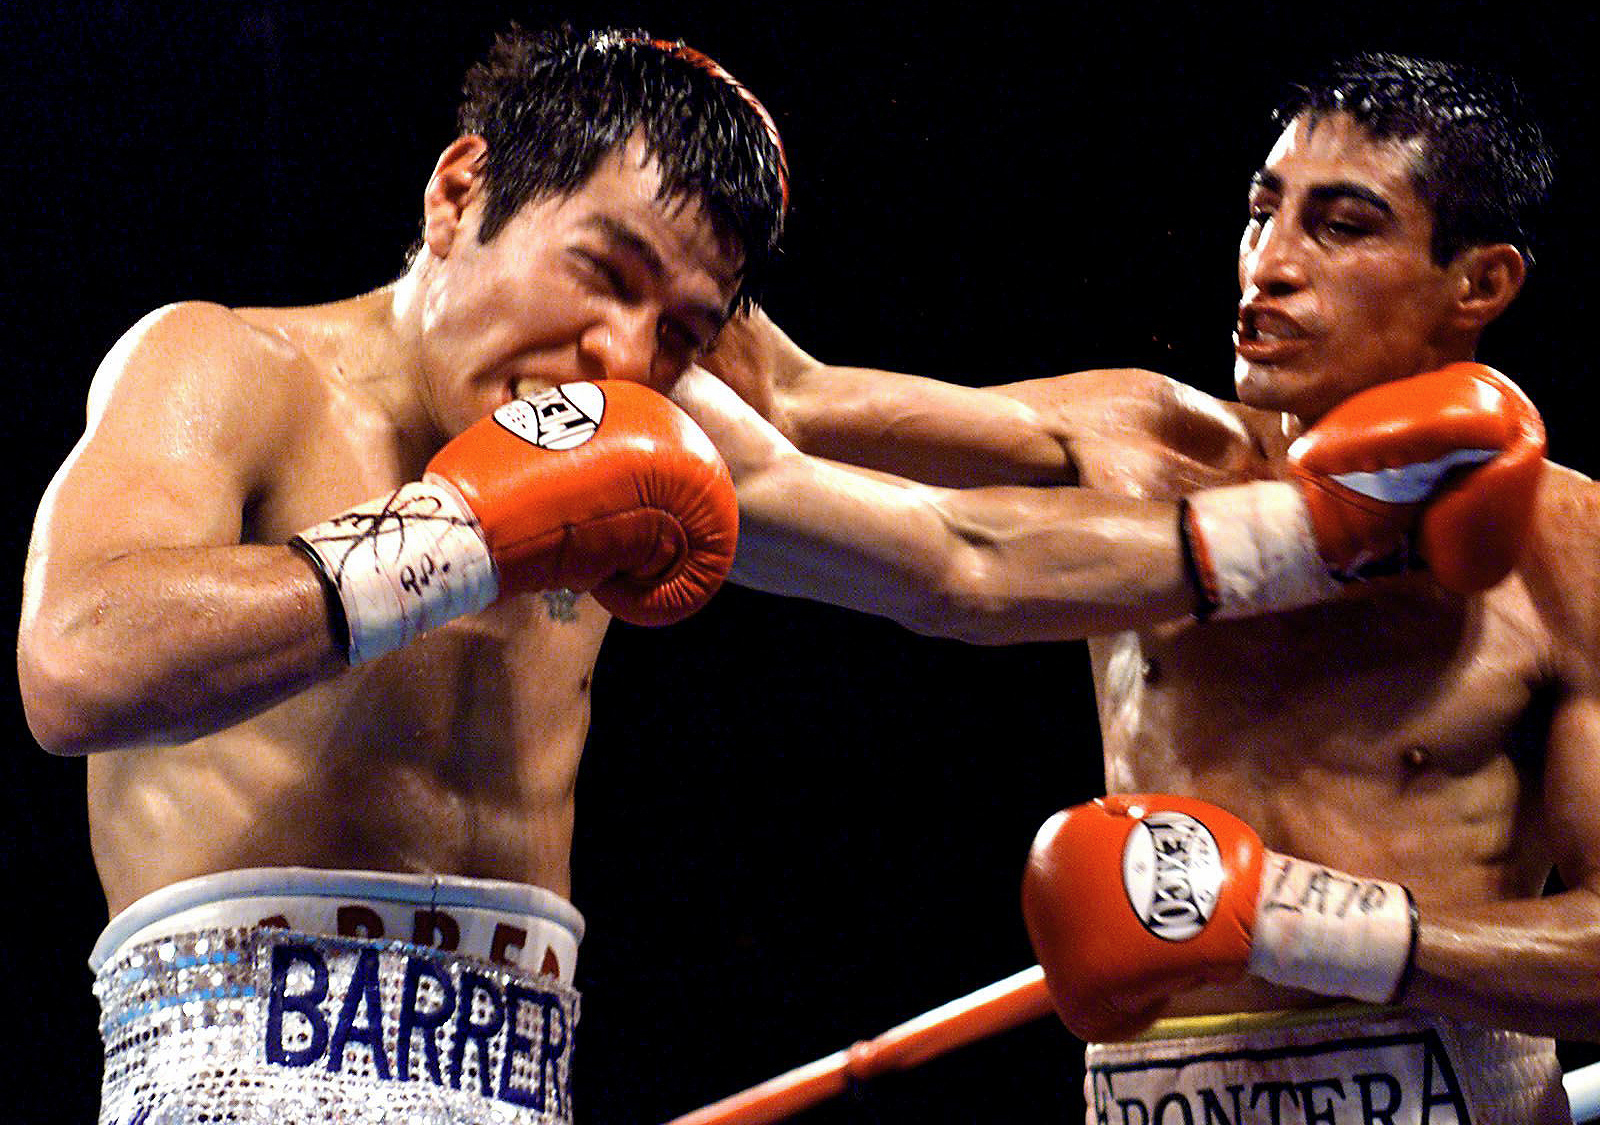 Barrera vs Morales I was the most intense chapter of the trilogy